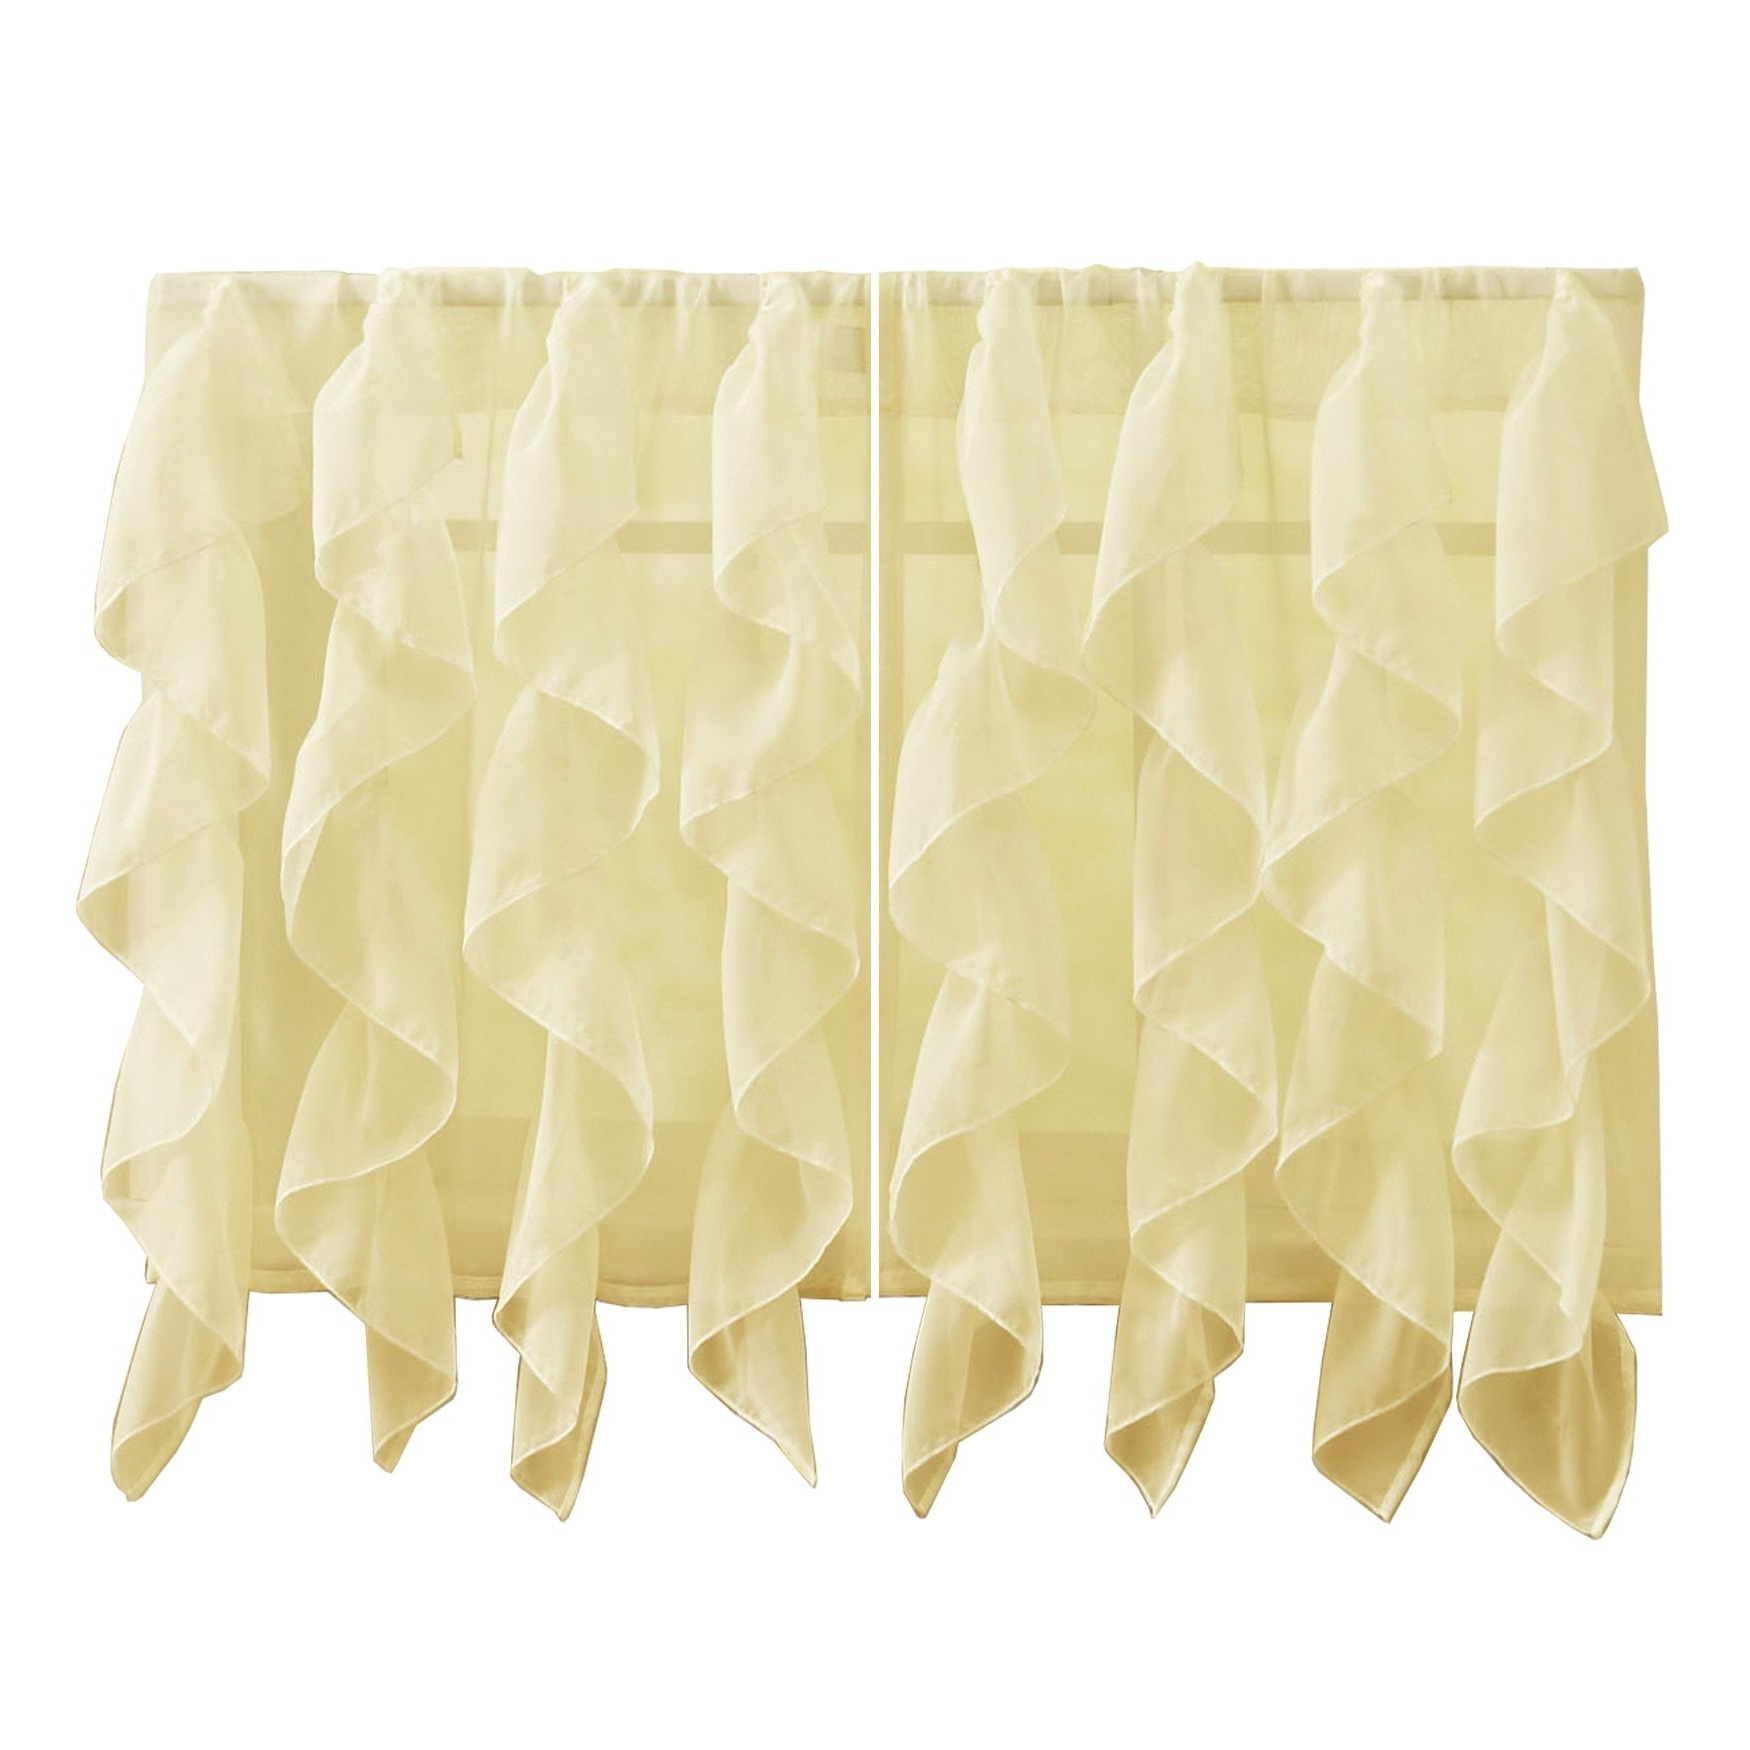 Most Recently Released Maize Vertical Ruffled Waterfall Valance And Curtain Tiers Intended For Sweet Home Collection Maize Vertical Ruffled Waterfall Valance And Curtain Tiers (View 5 of 20)